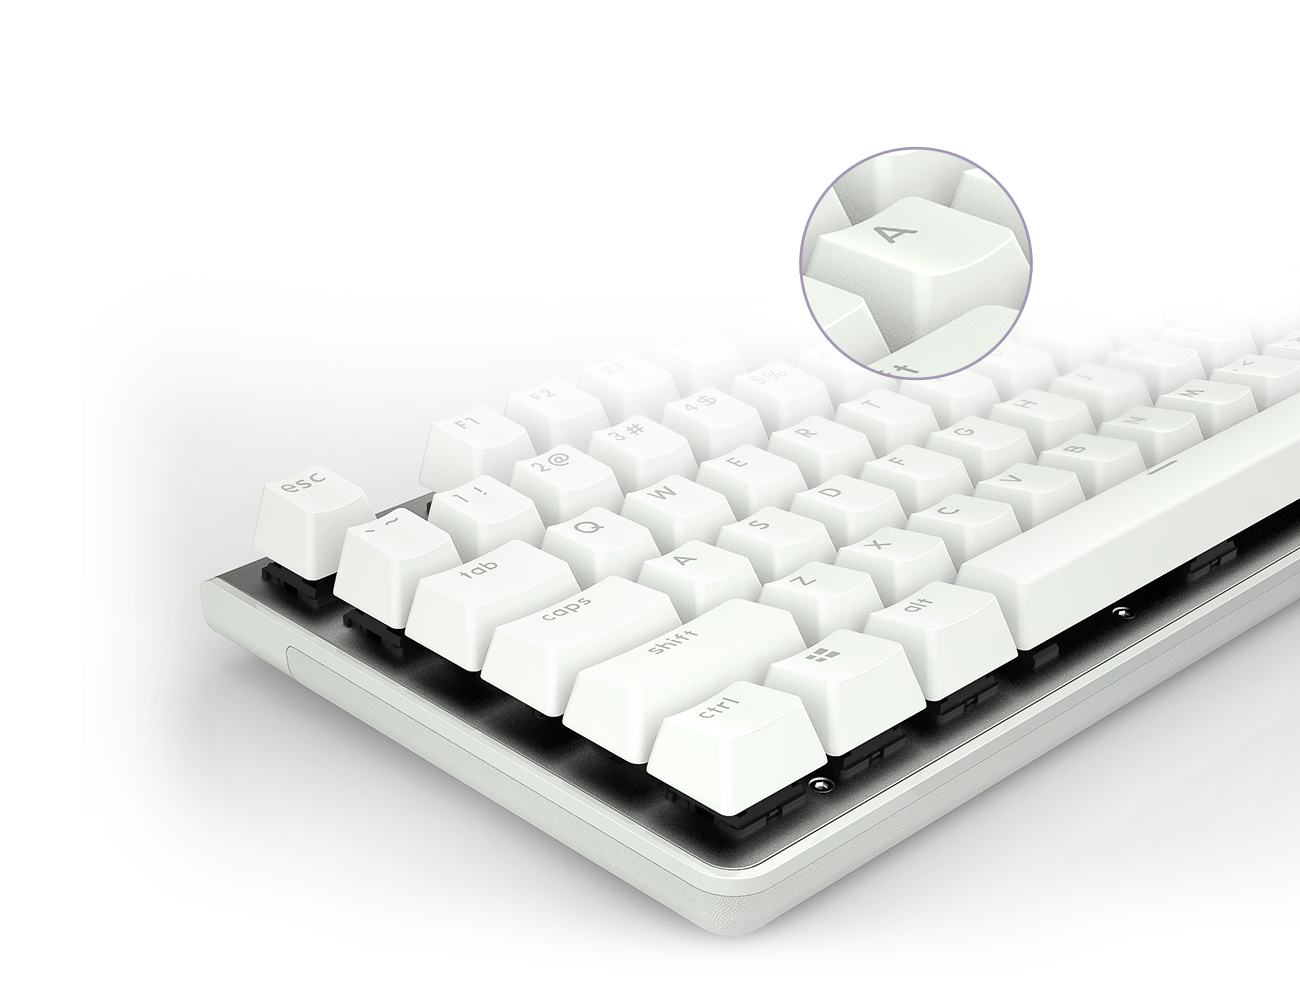 the detail of the white keyboard